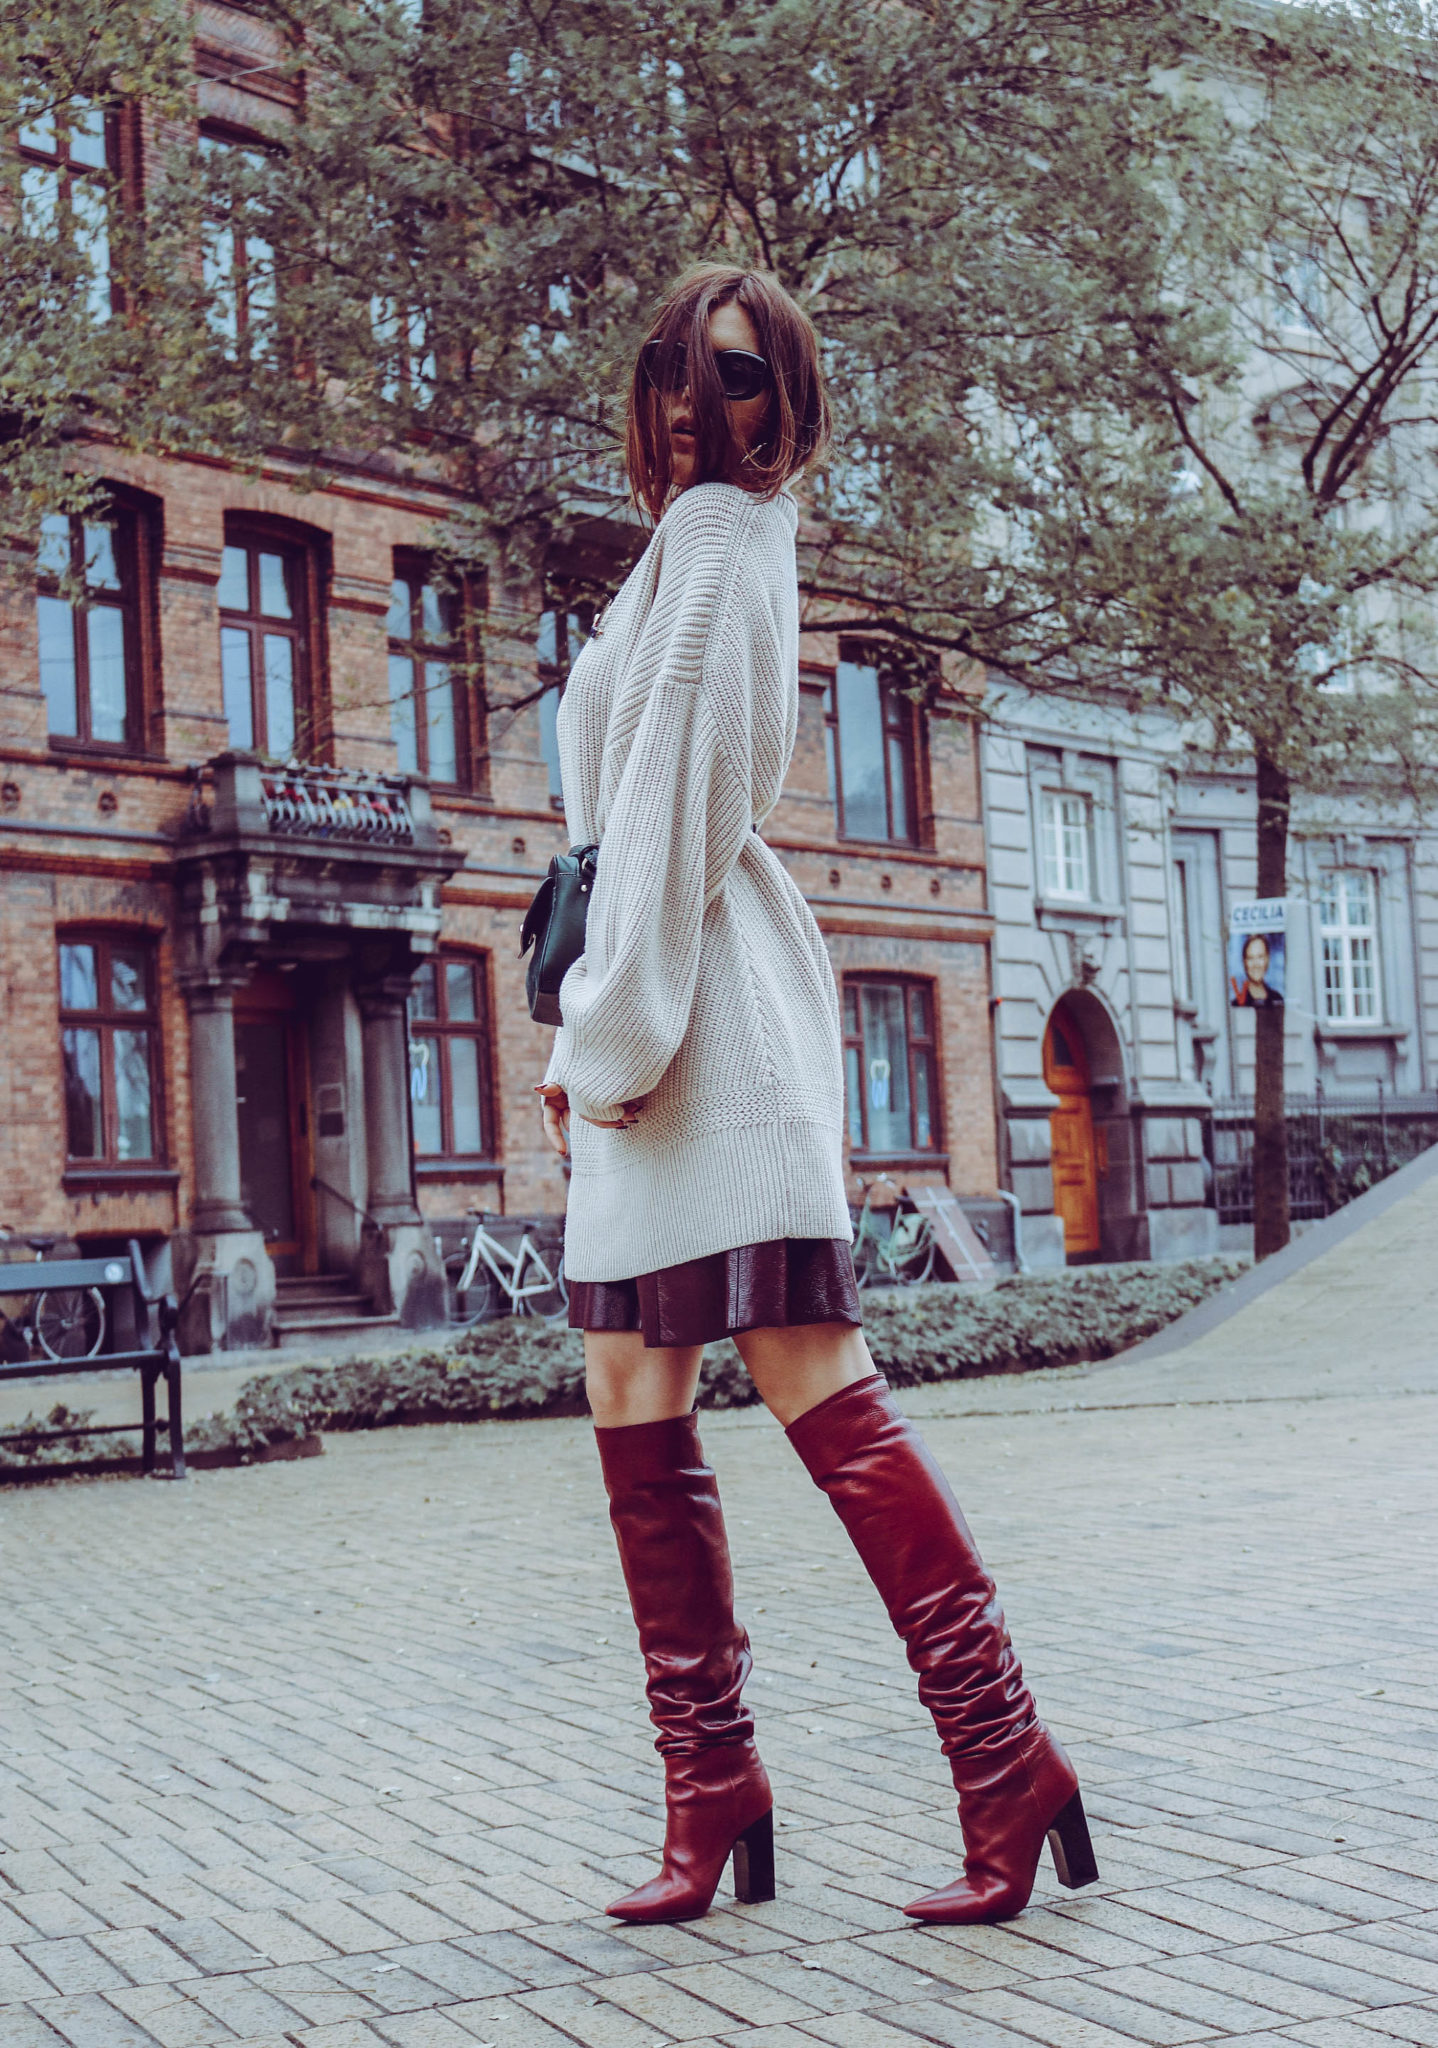 oversized knitwear, high boots and bumbag